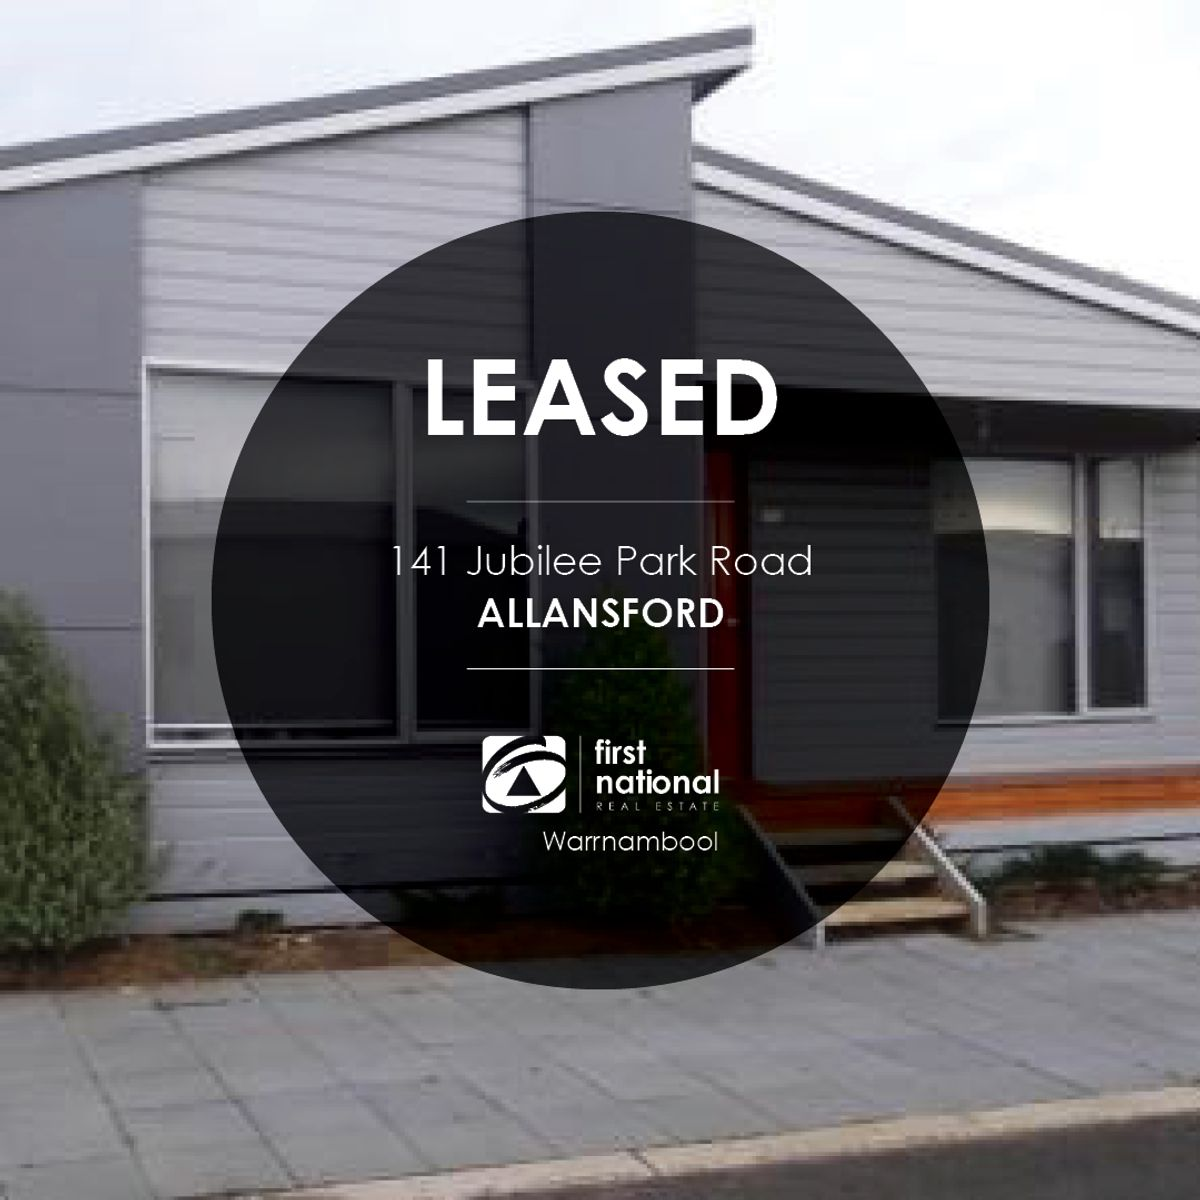 141/125 Jubilee Park Road, Allansford, VIC 3277